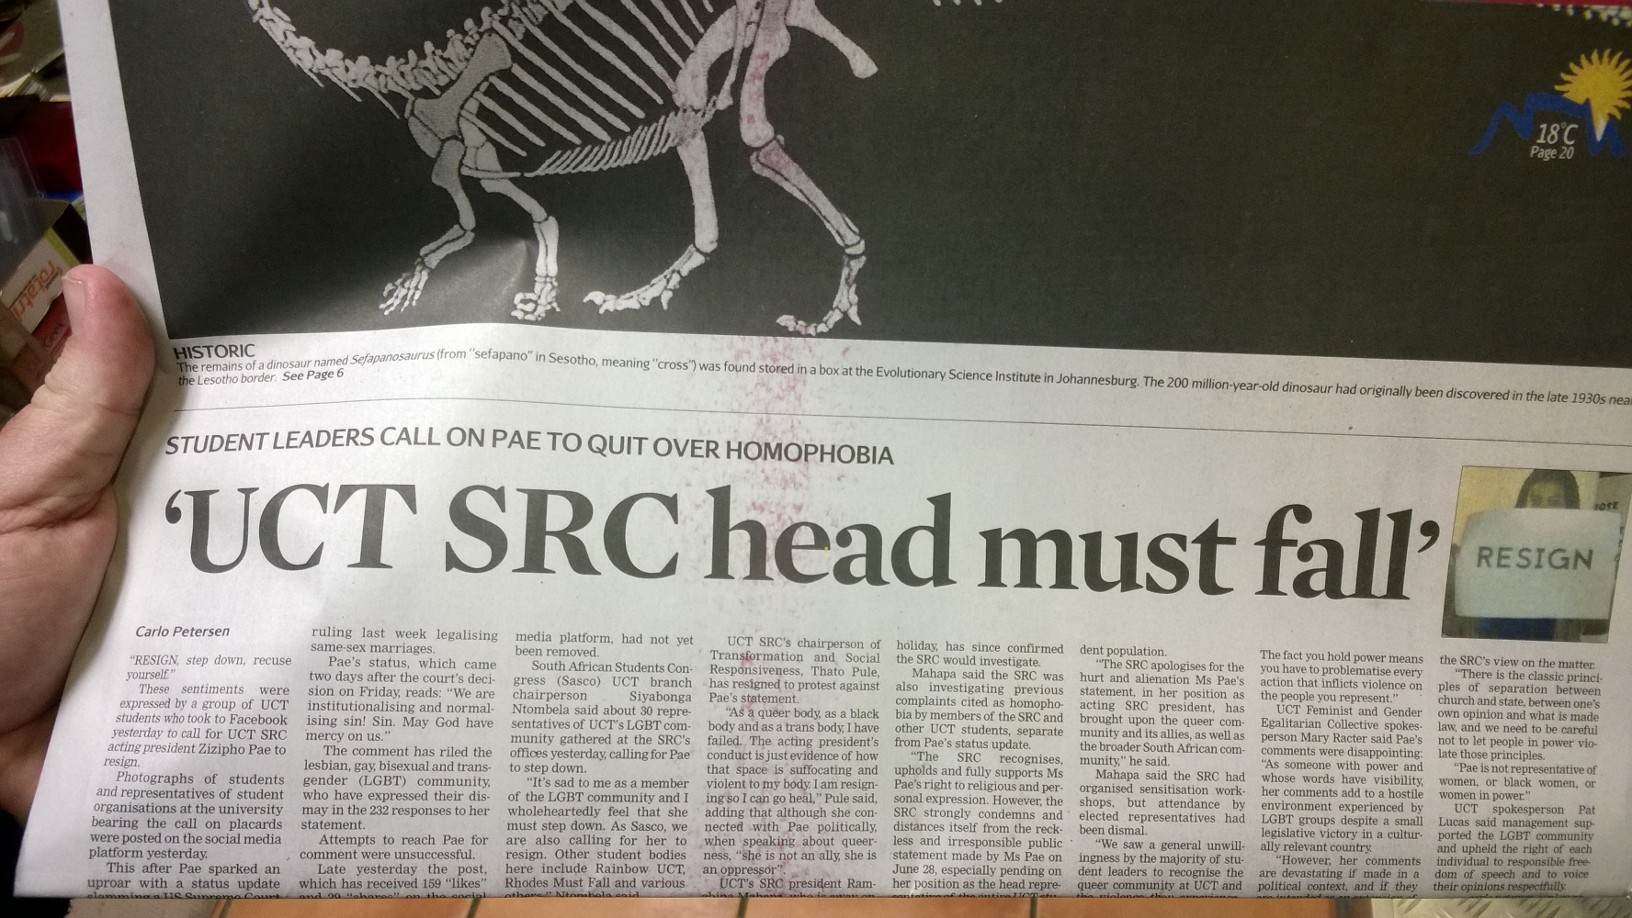 UCT SRC head Must Fall newspaper headline